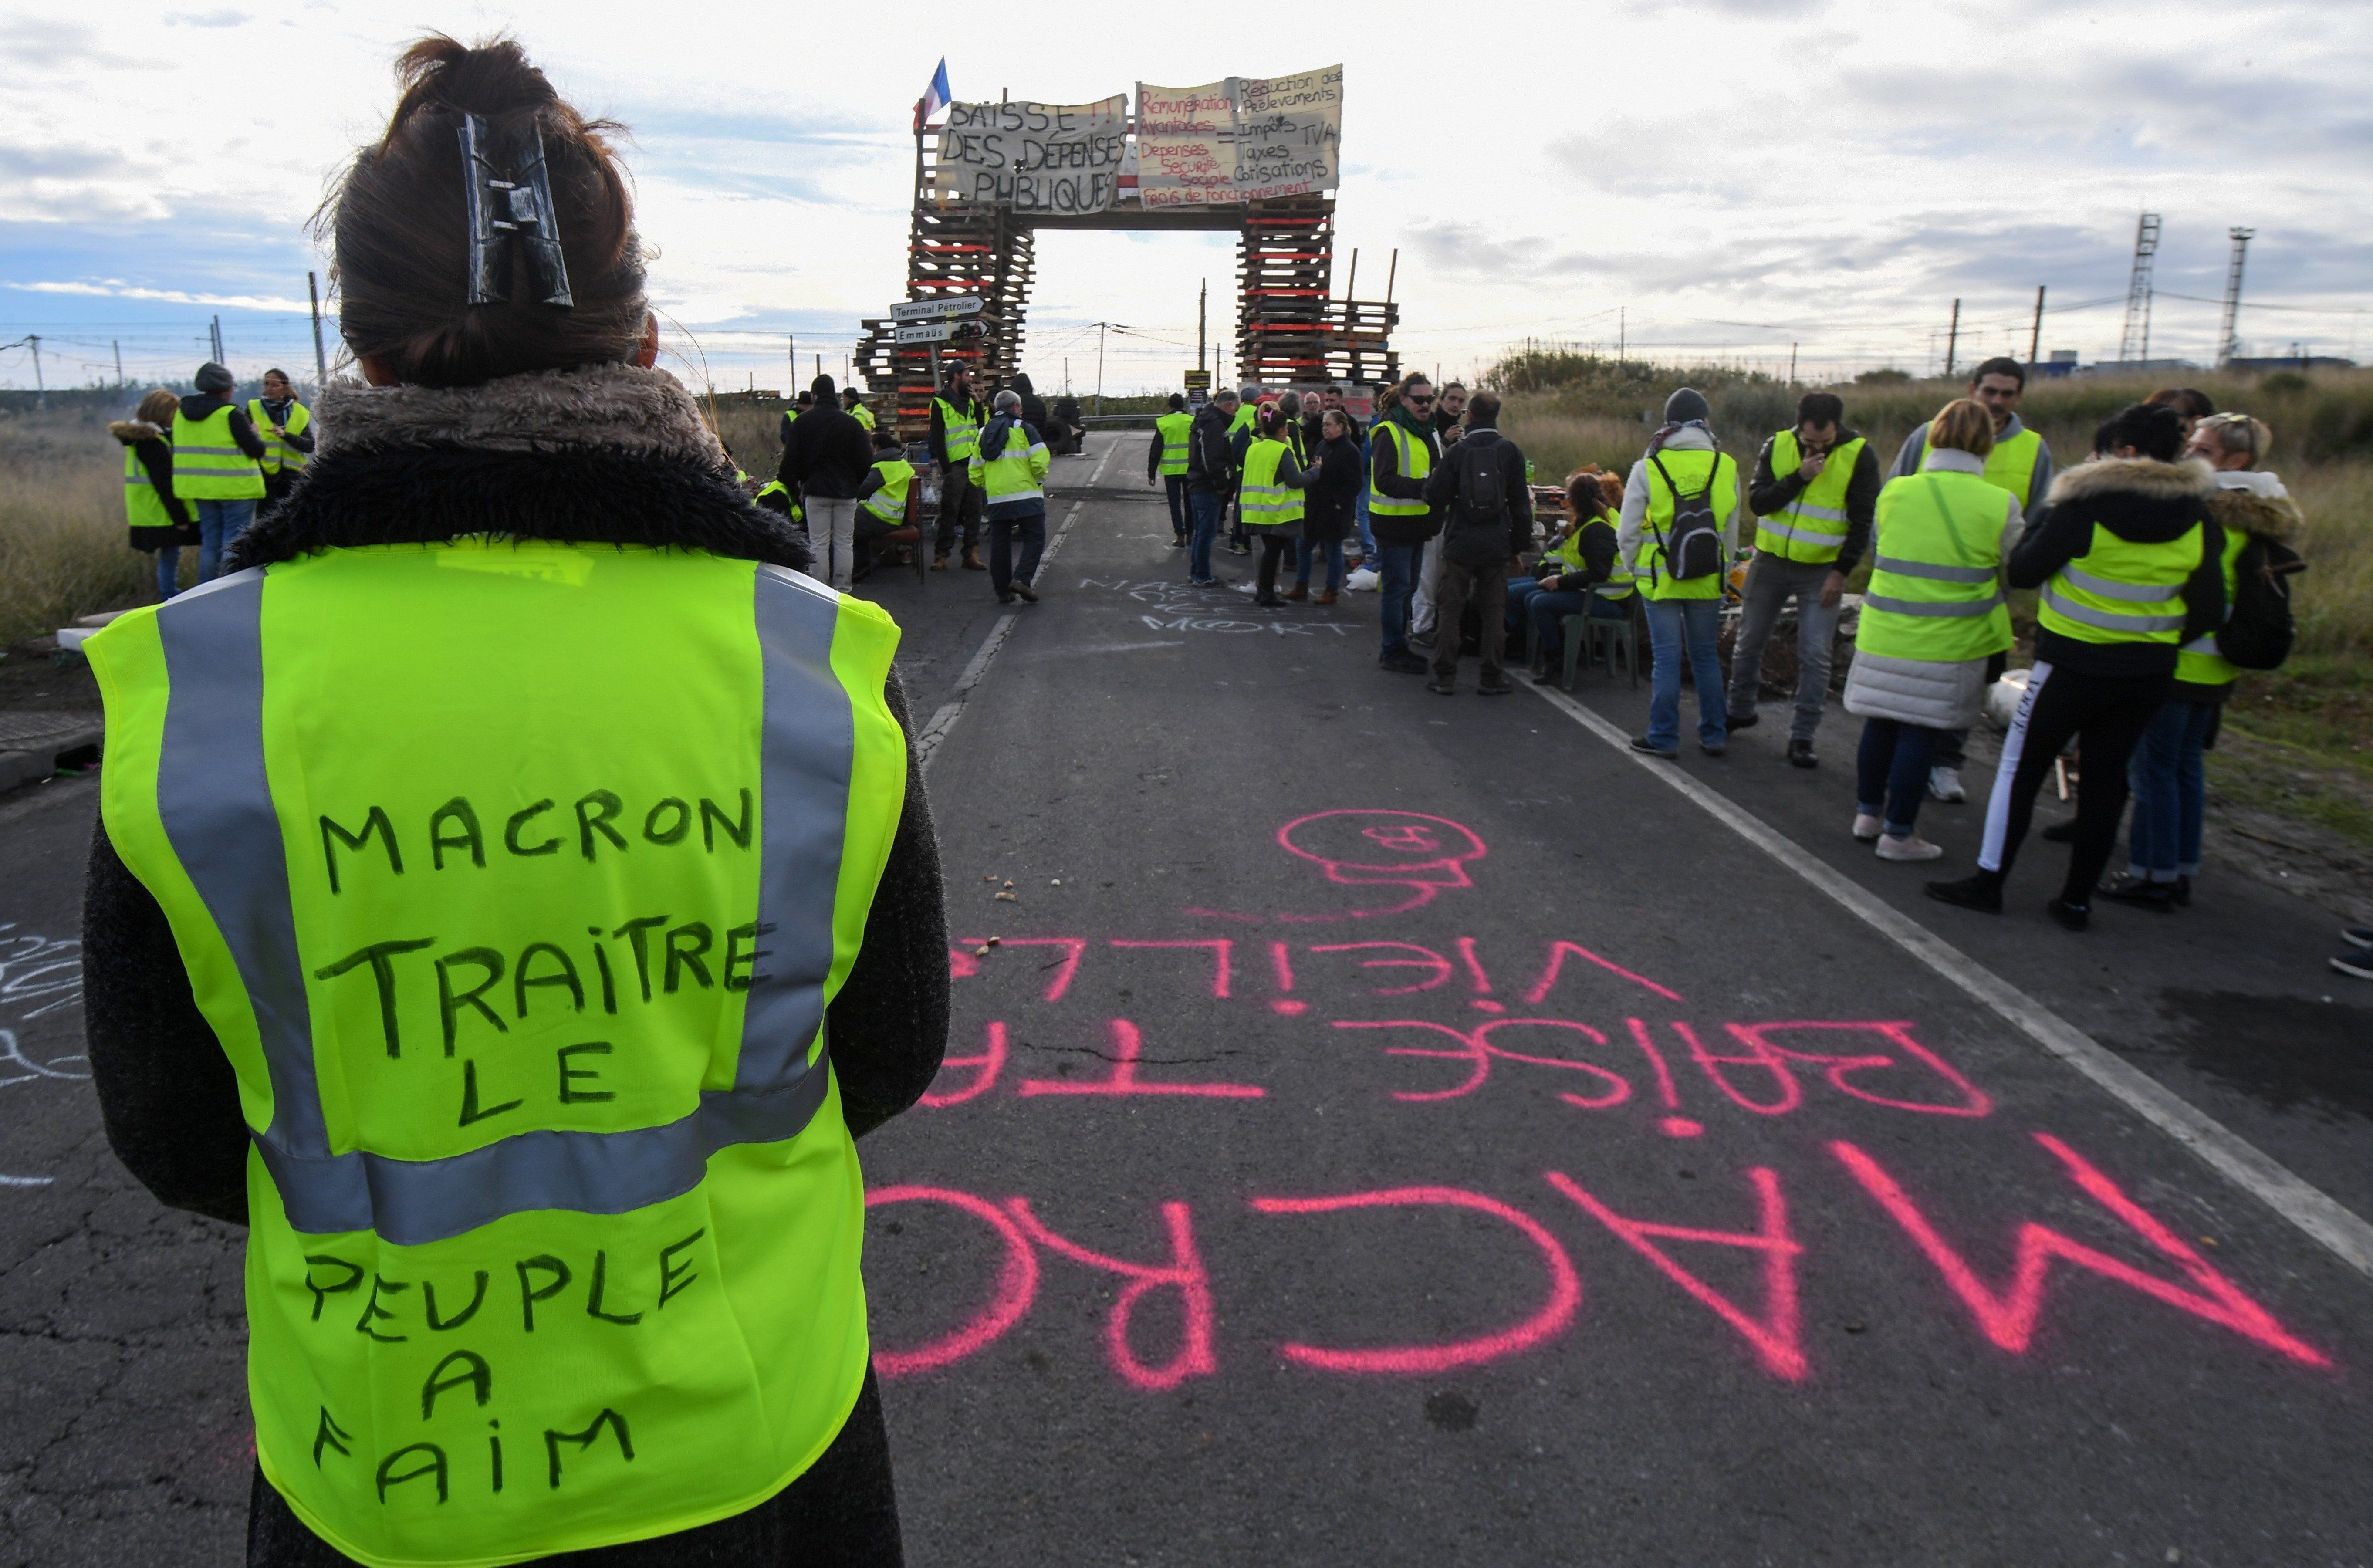 Macron Set To Suspend Fuel Tax Increase To End French 'Yellow Vest' Protests